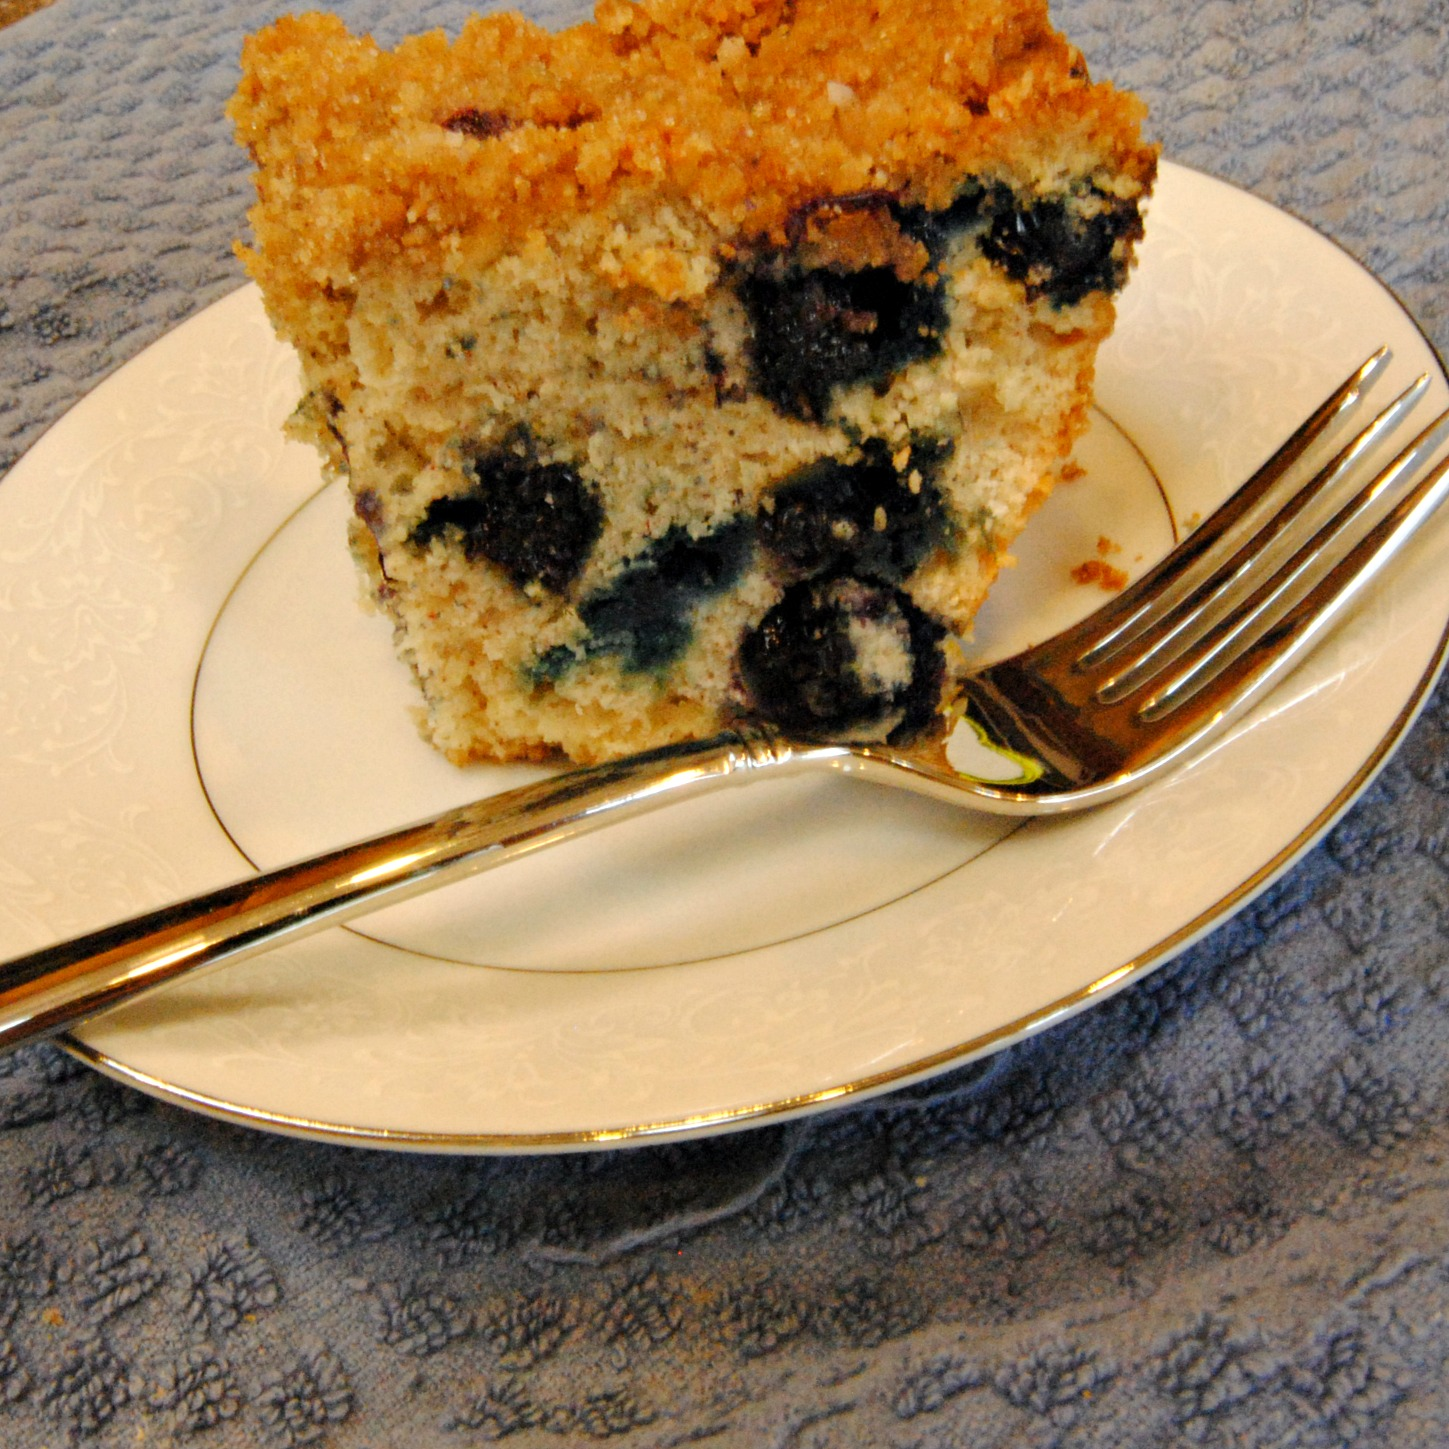 Homemade By Holman: Blueberry Crumb Cake